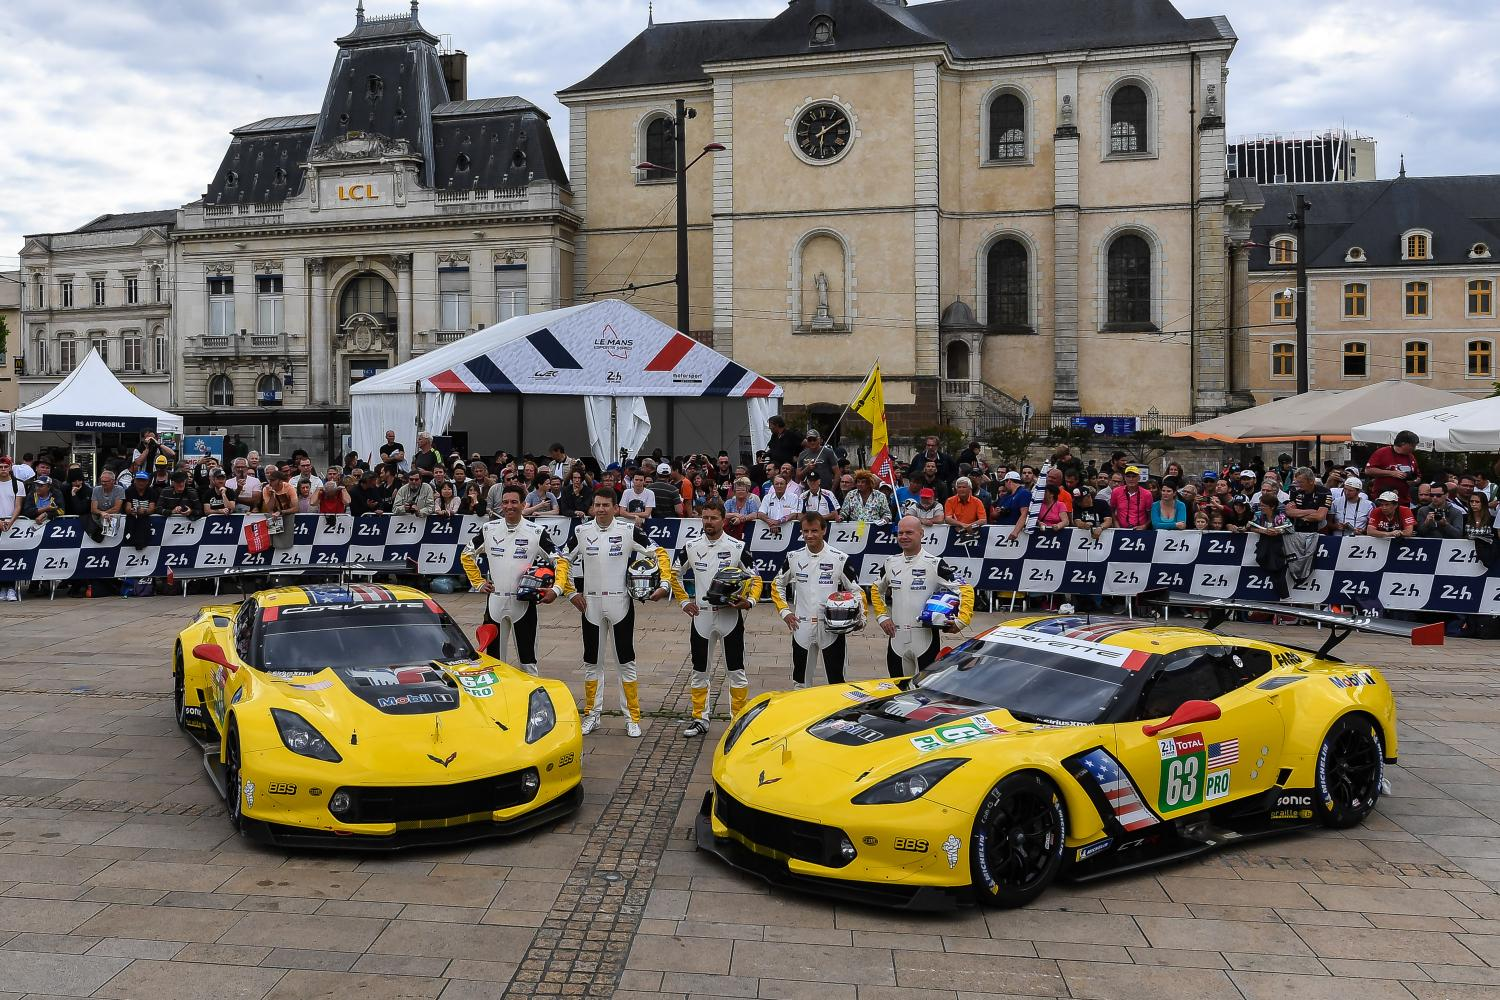 The 2019 Corvette Racing Teams in Le Mans, France. This race marks the last time Corvette Racing competed at the 24 hour event.